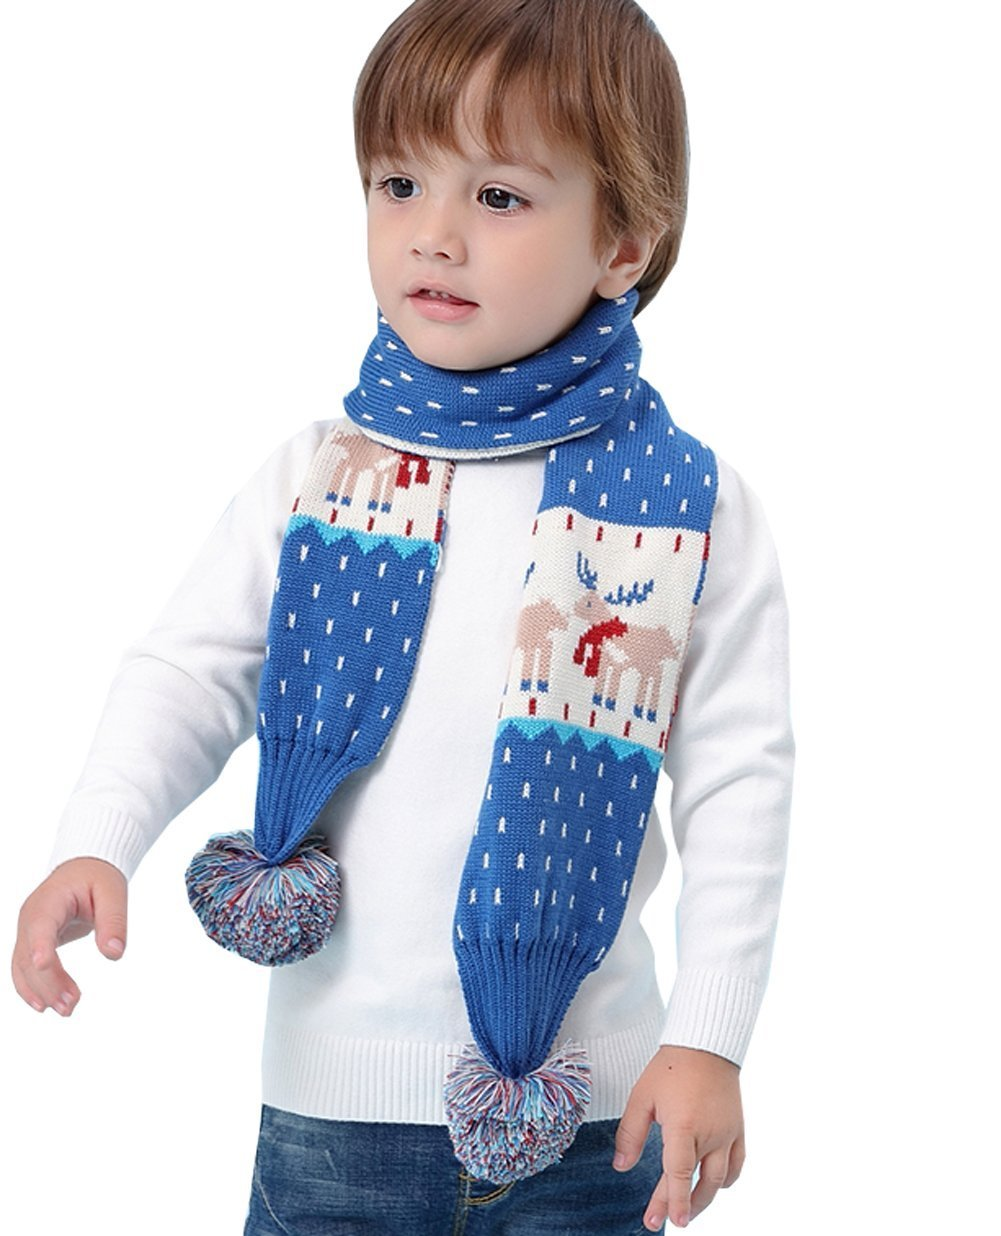 Kids Christmas Reindeer Scarf Winter Fashion Warm Long Knit Scarf With Pom Pom